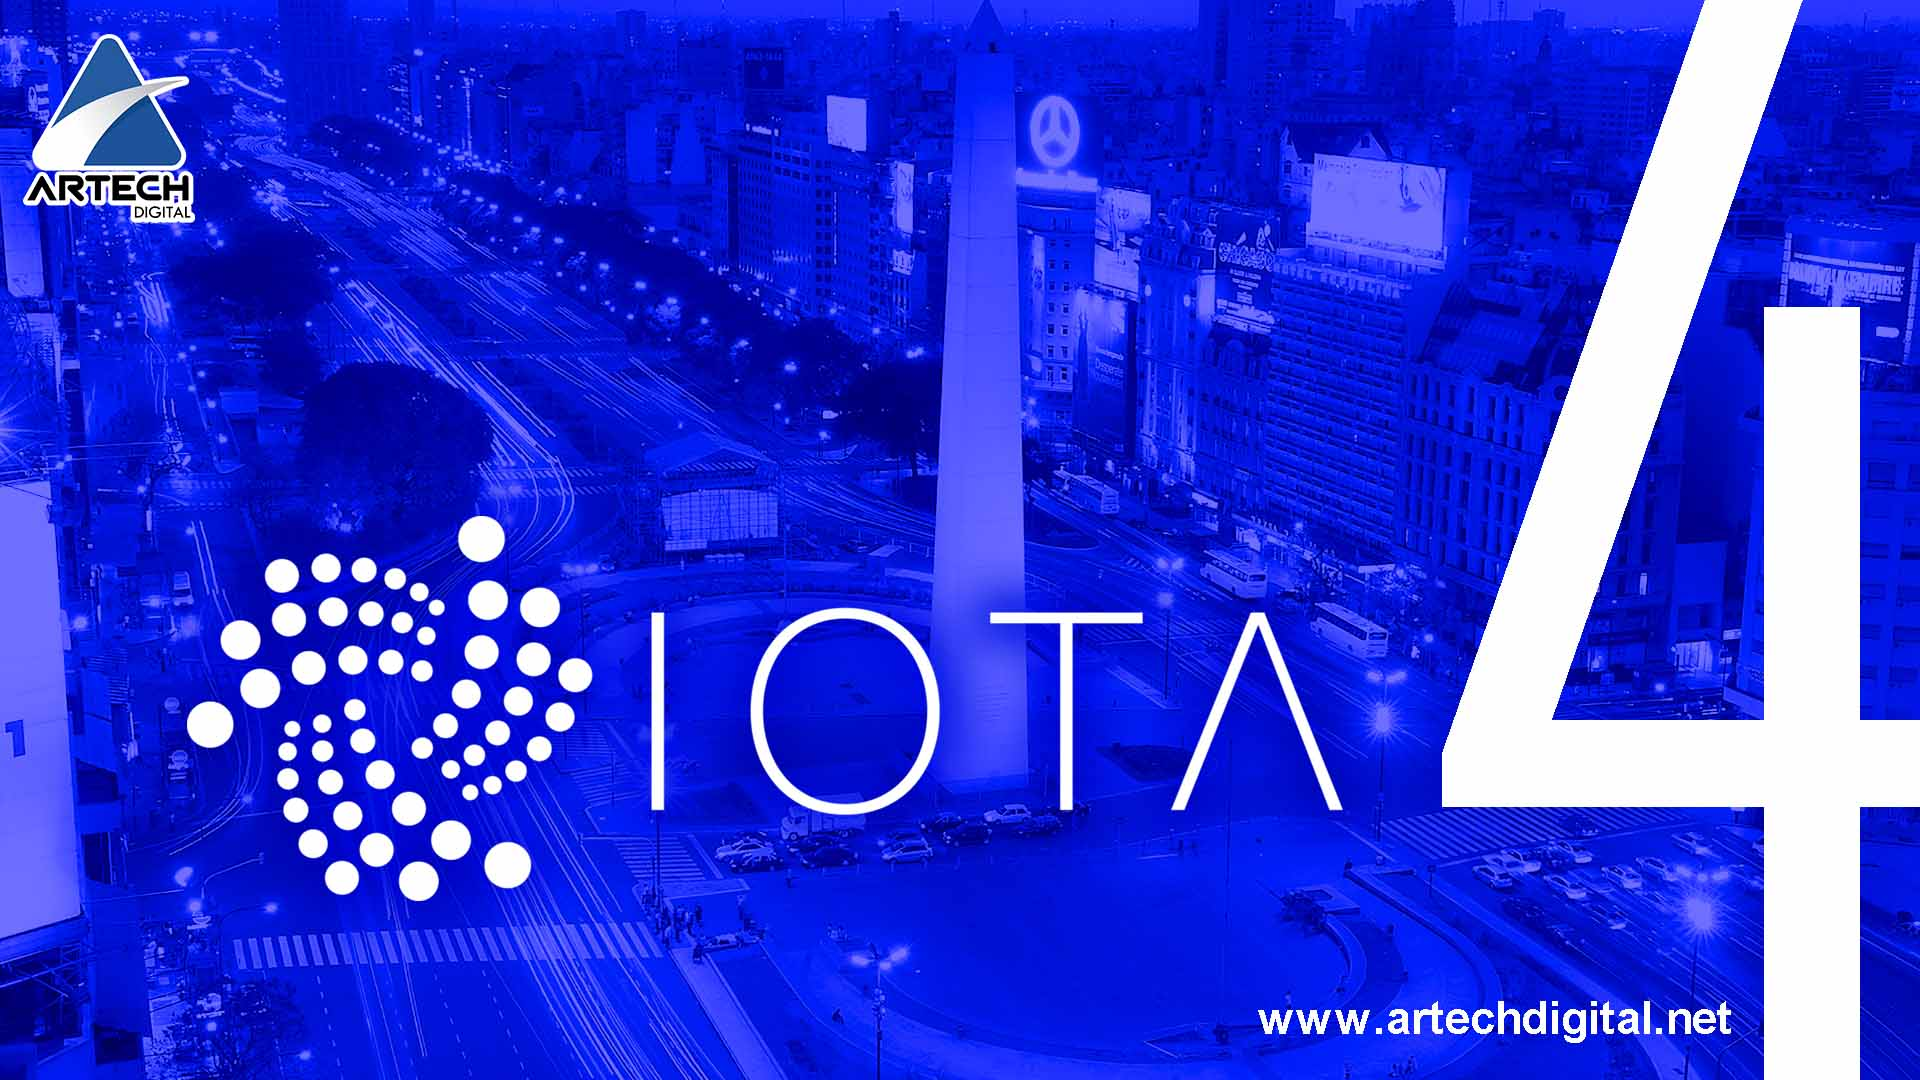 Fourth edition of IOTA Buenos Aires Meetup will be held on November 22nd